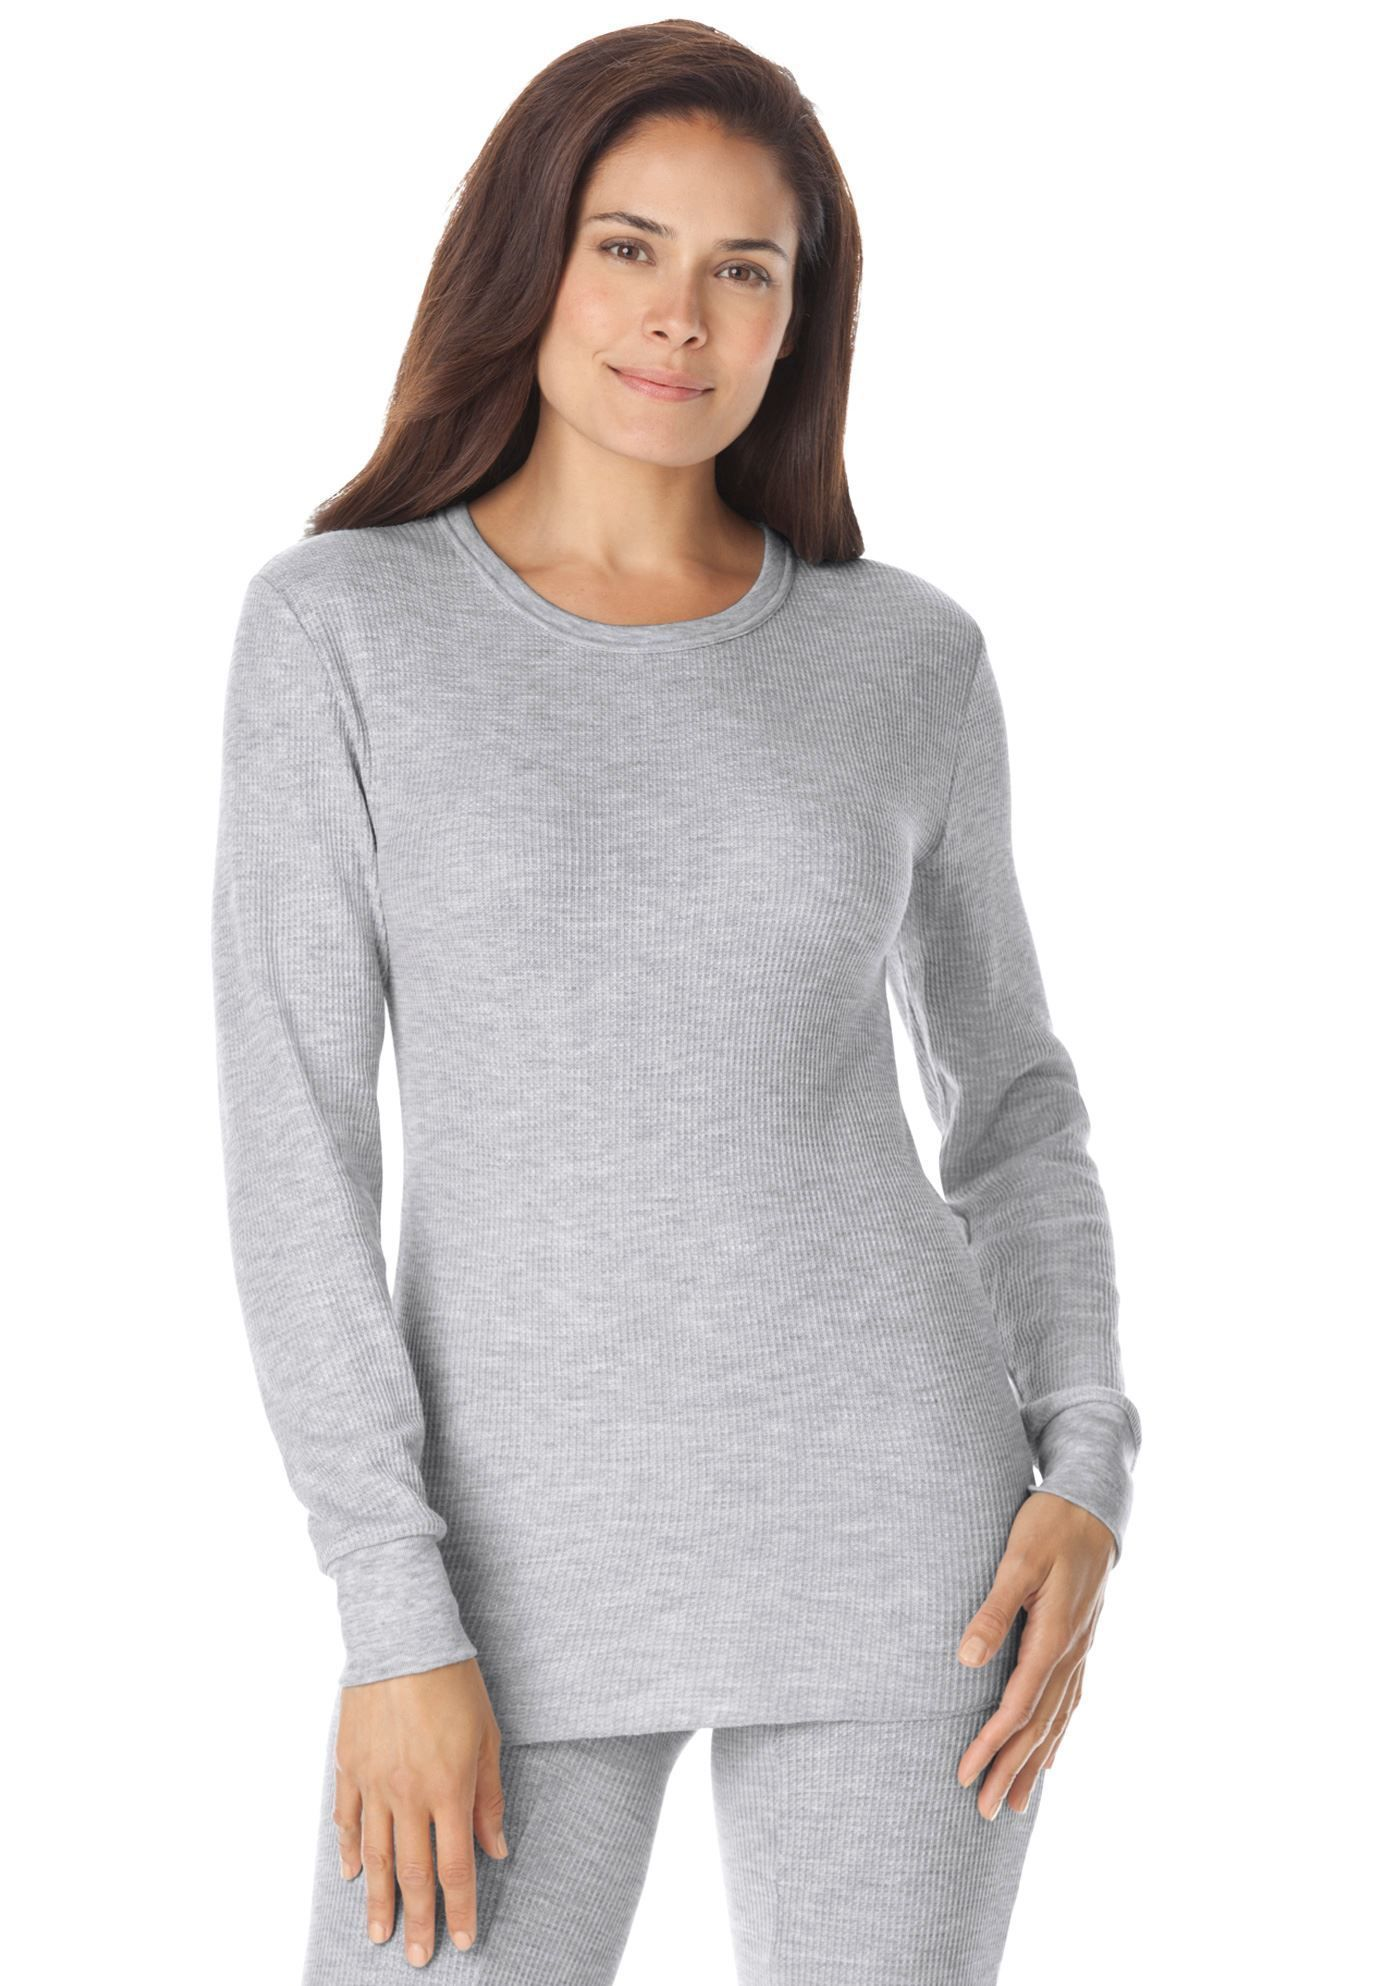 80b781de62a Thermal Knit Sleep Tee by Comfort Choice - Women s Plus Size Clothing